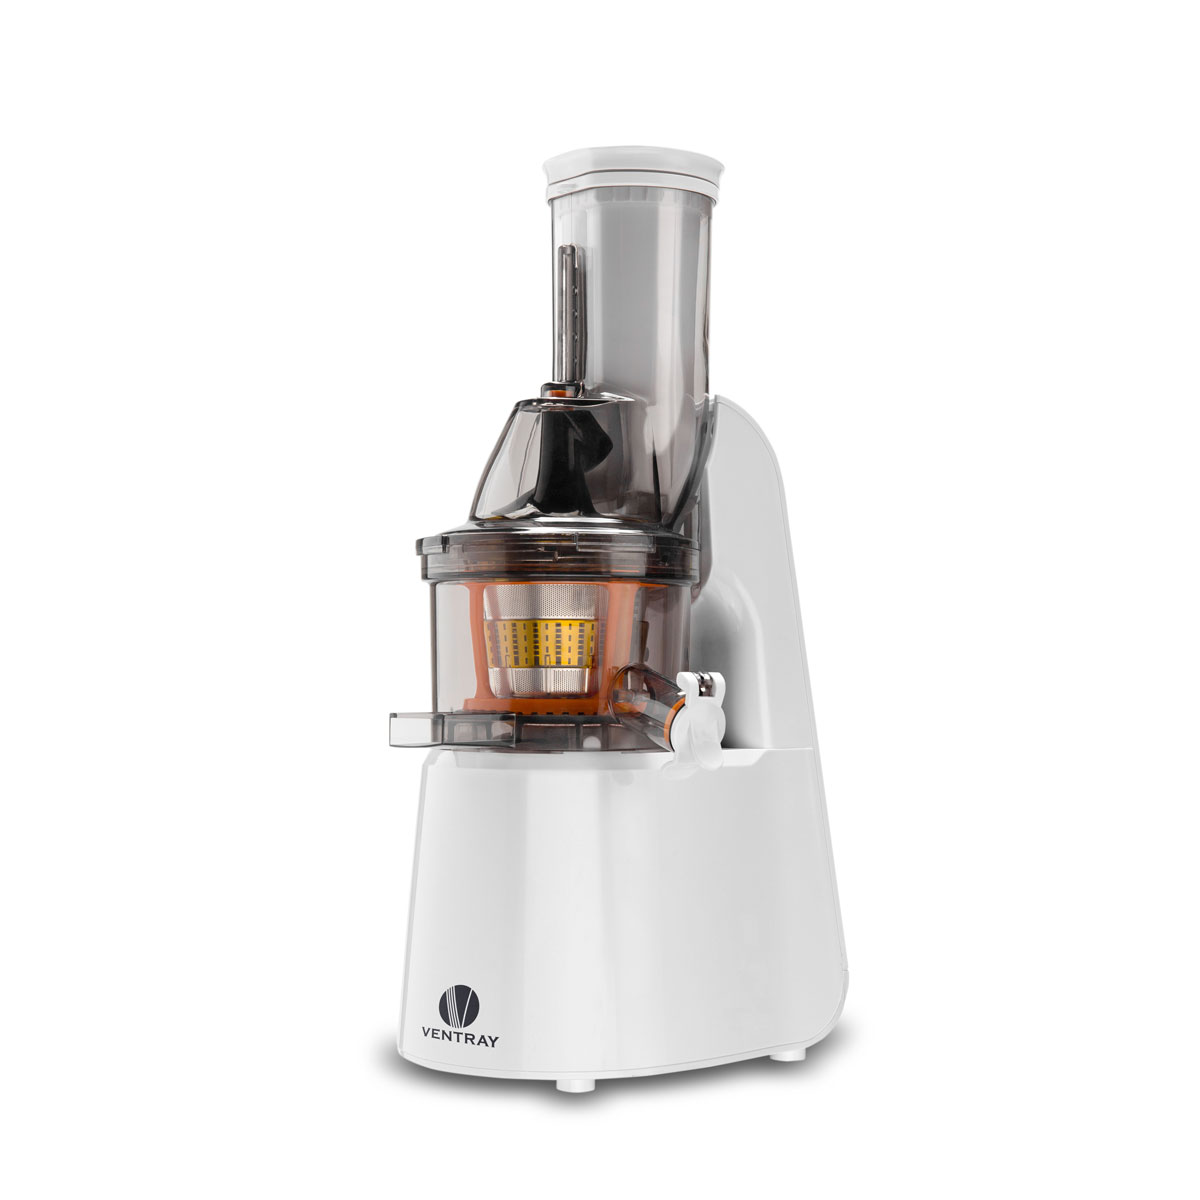 Best Masticating Juicer For Beginners : ventray Kitchen Appliances, Countertop Small Appliances, Juicer, Blender